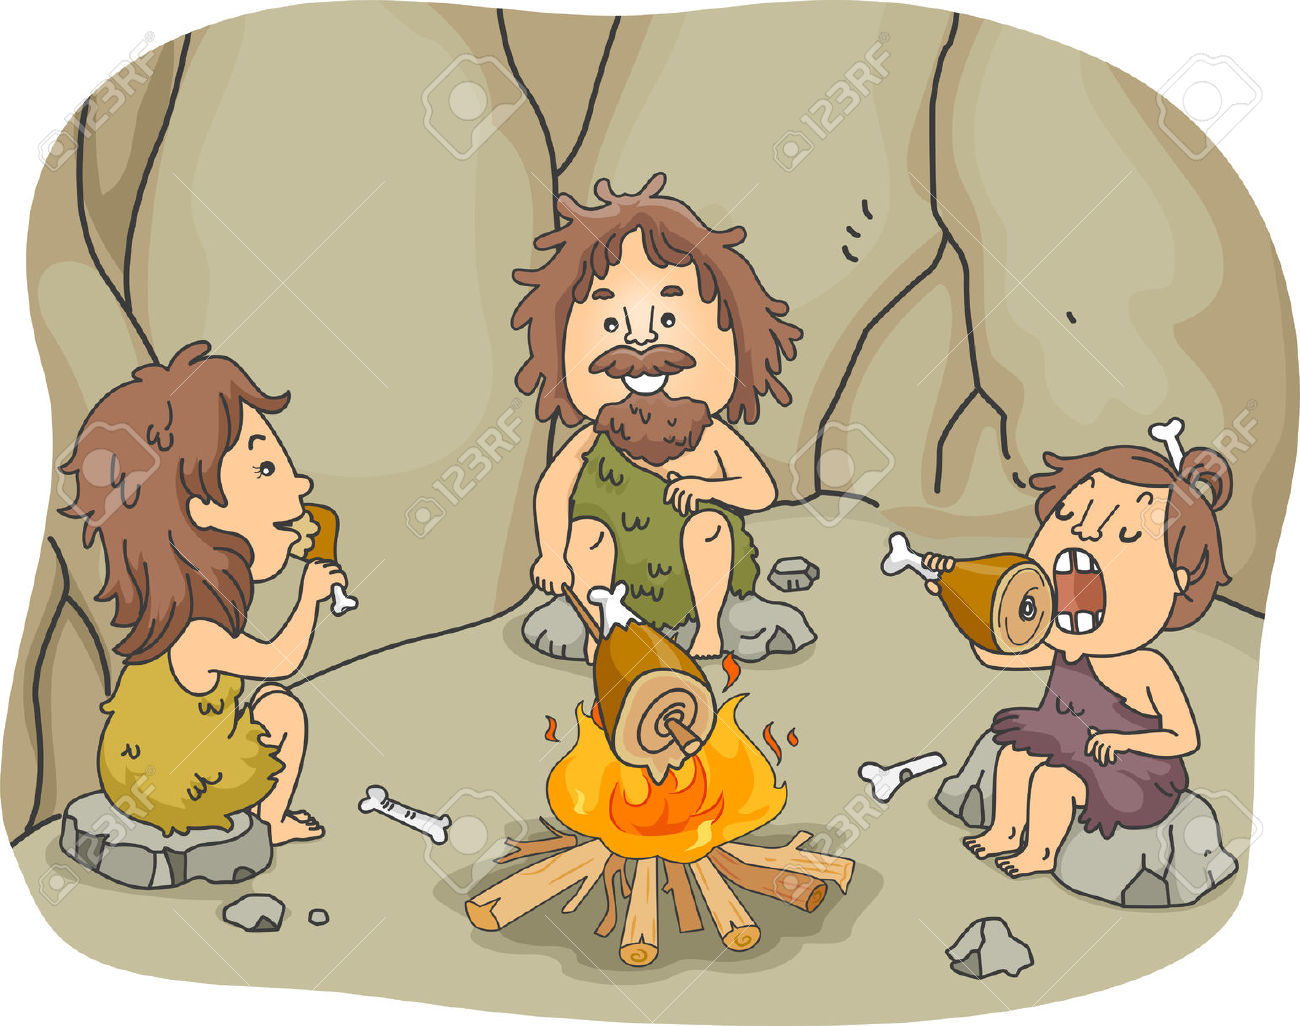 Familie beim essen clipart png royalty free download Illustration Eines Caveman Familie Essen Fleischstücke Zusammen ... png royalty free download